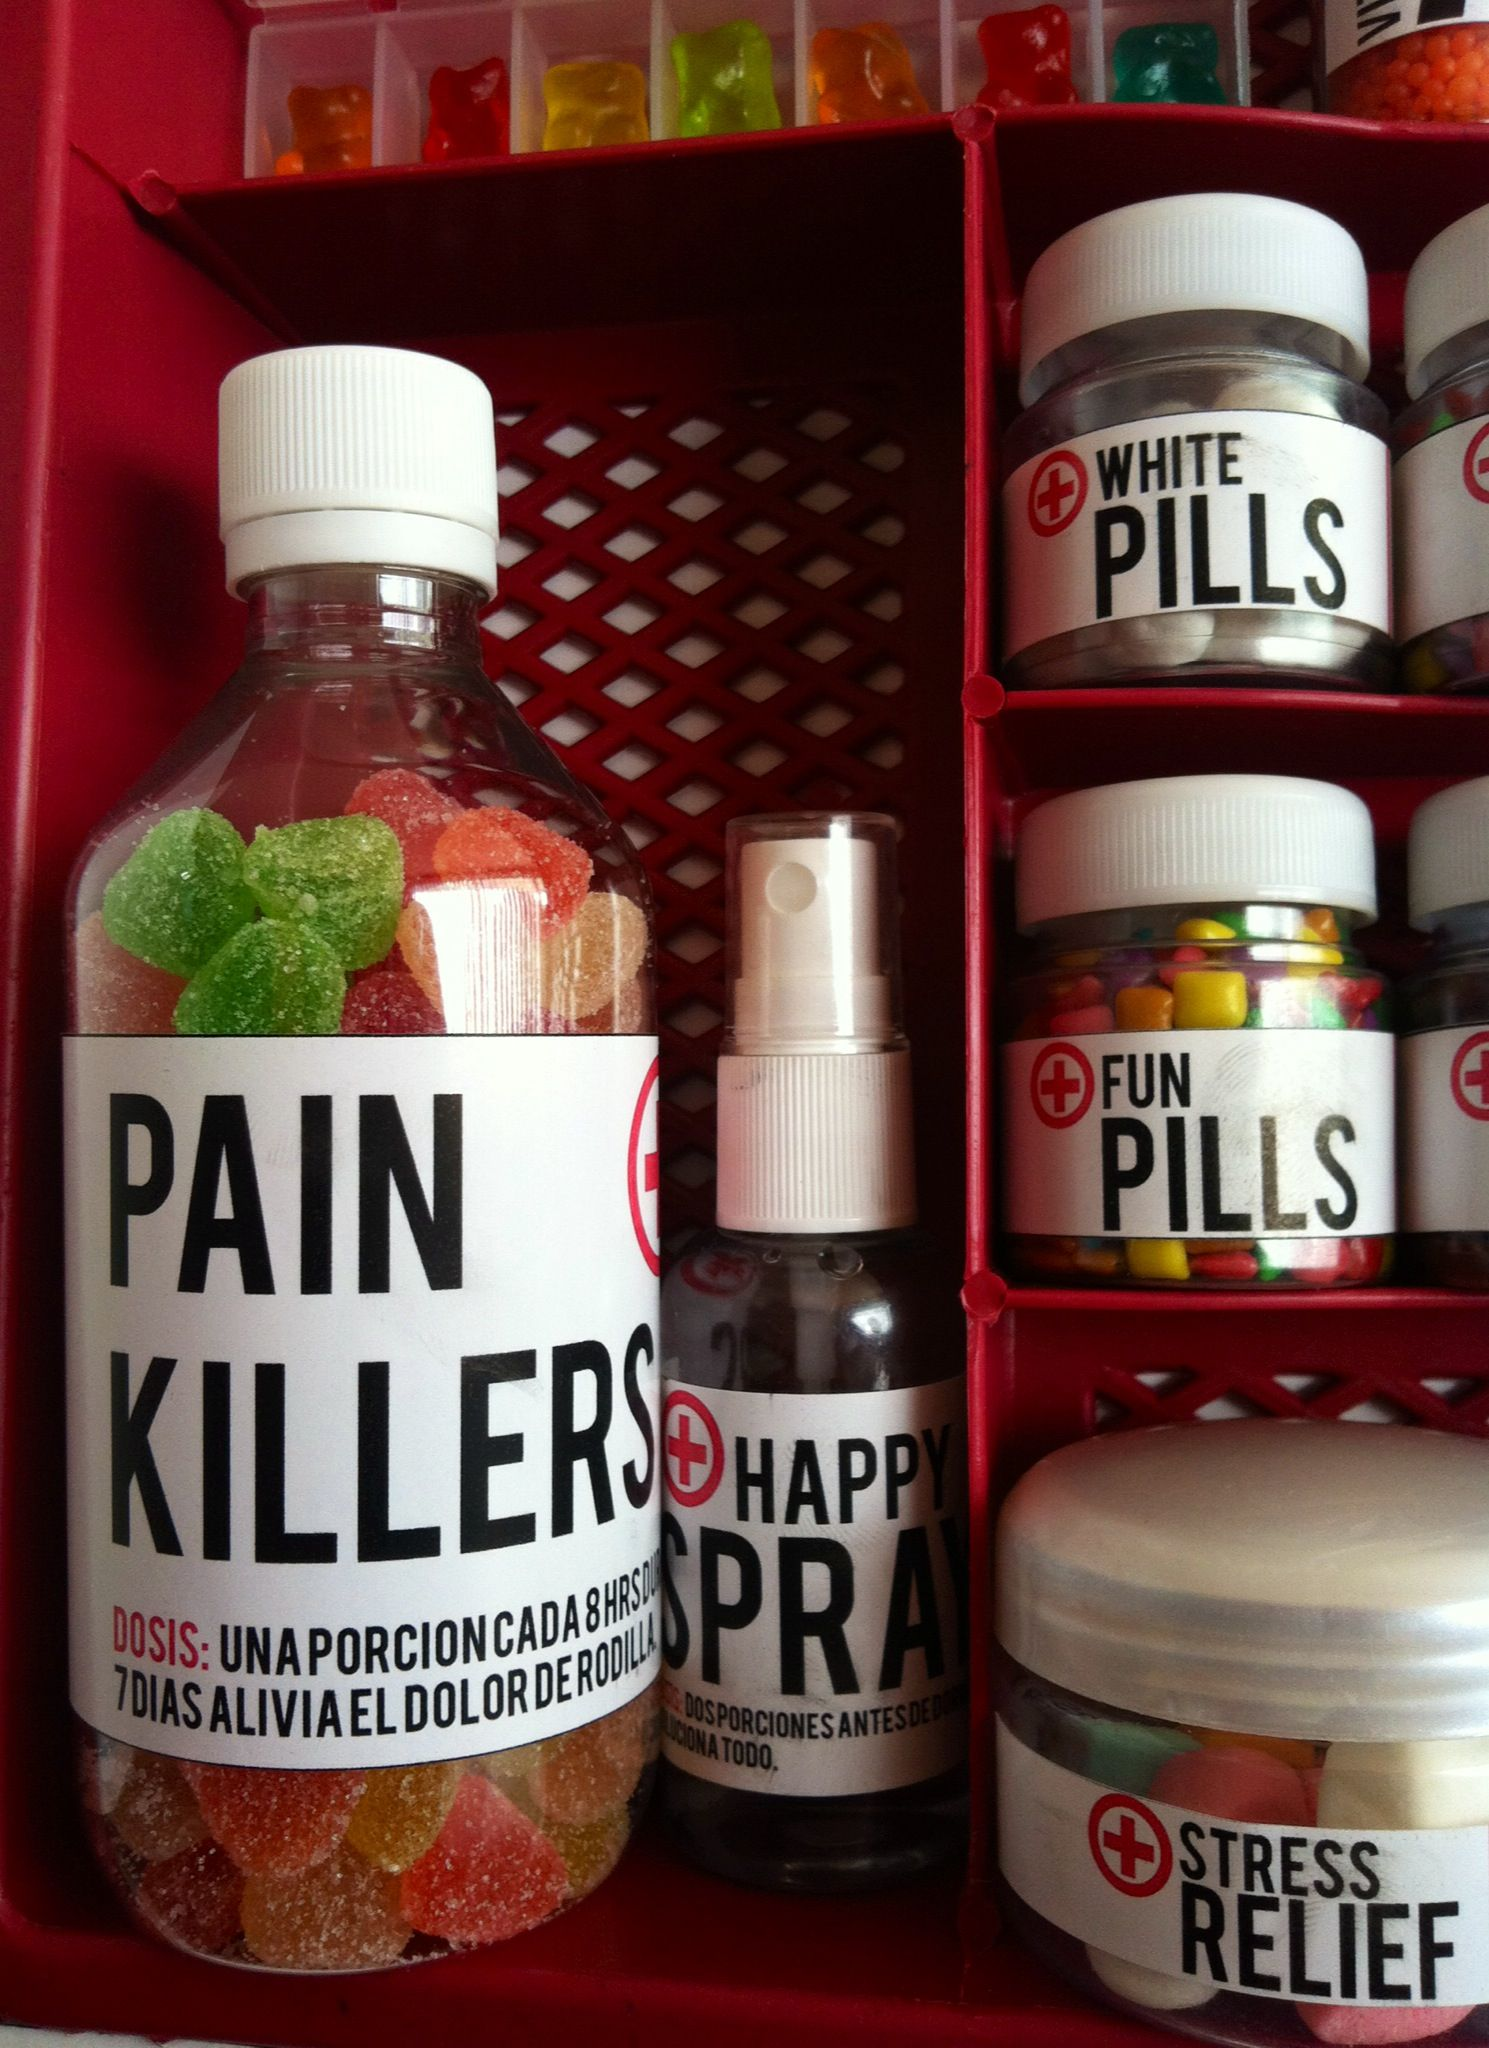 Get well gift, país killers, candy pills, dulces.